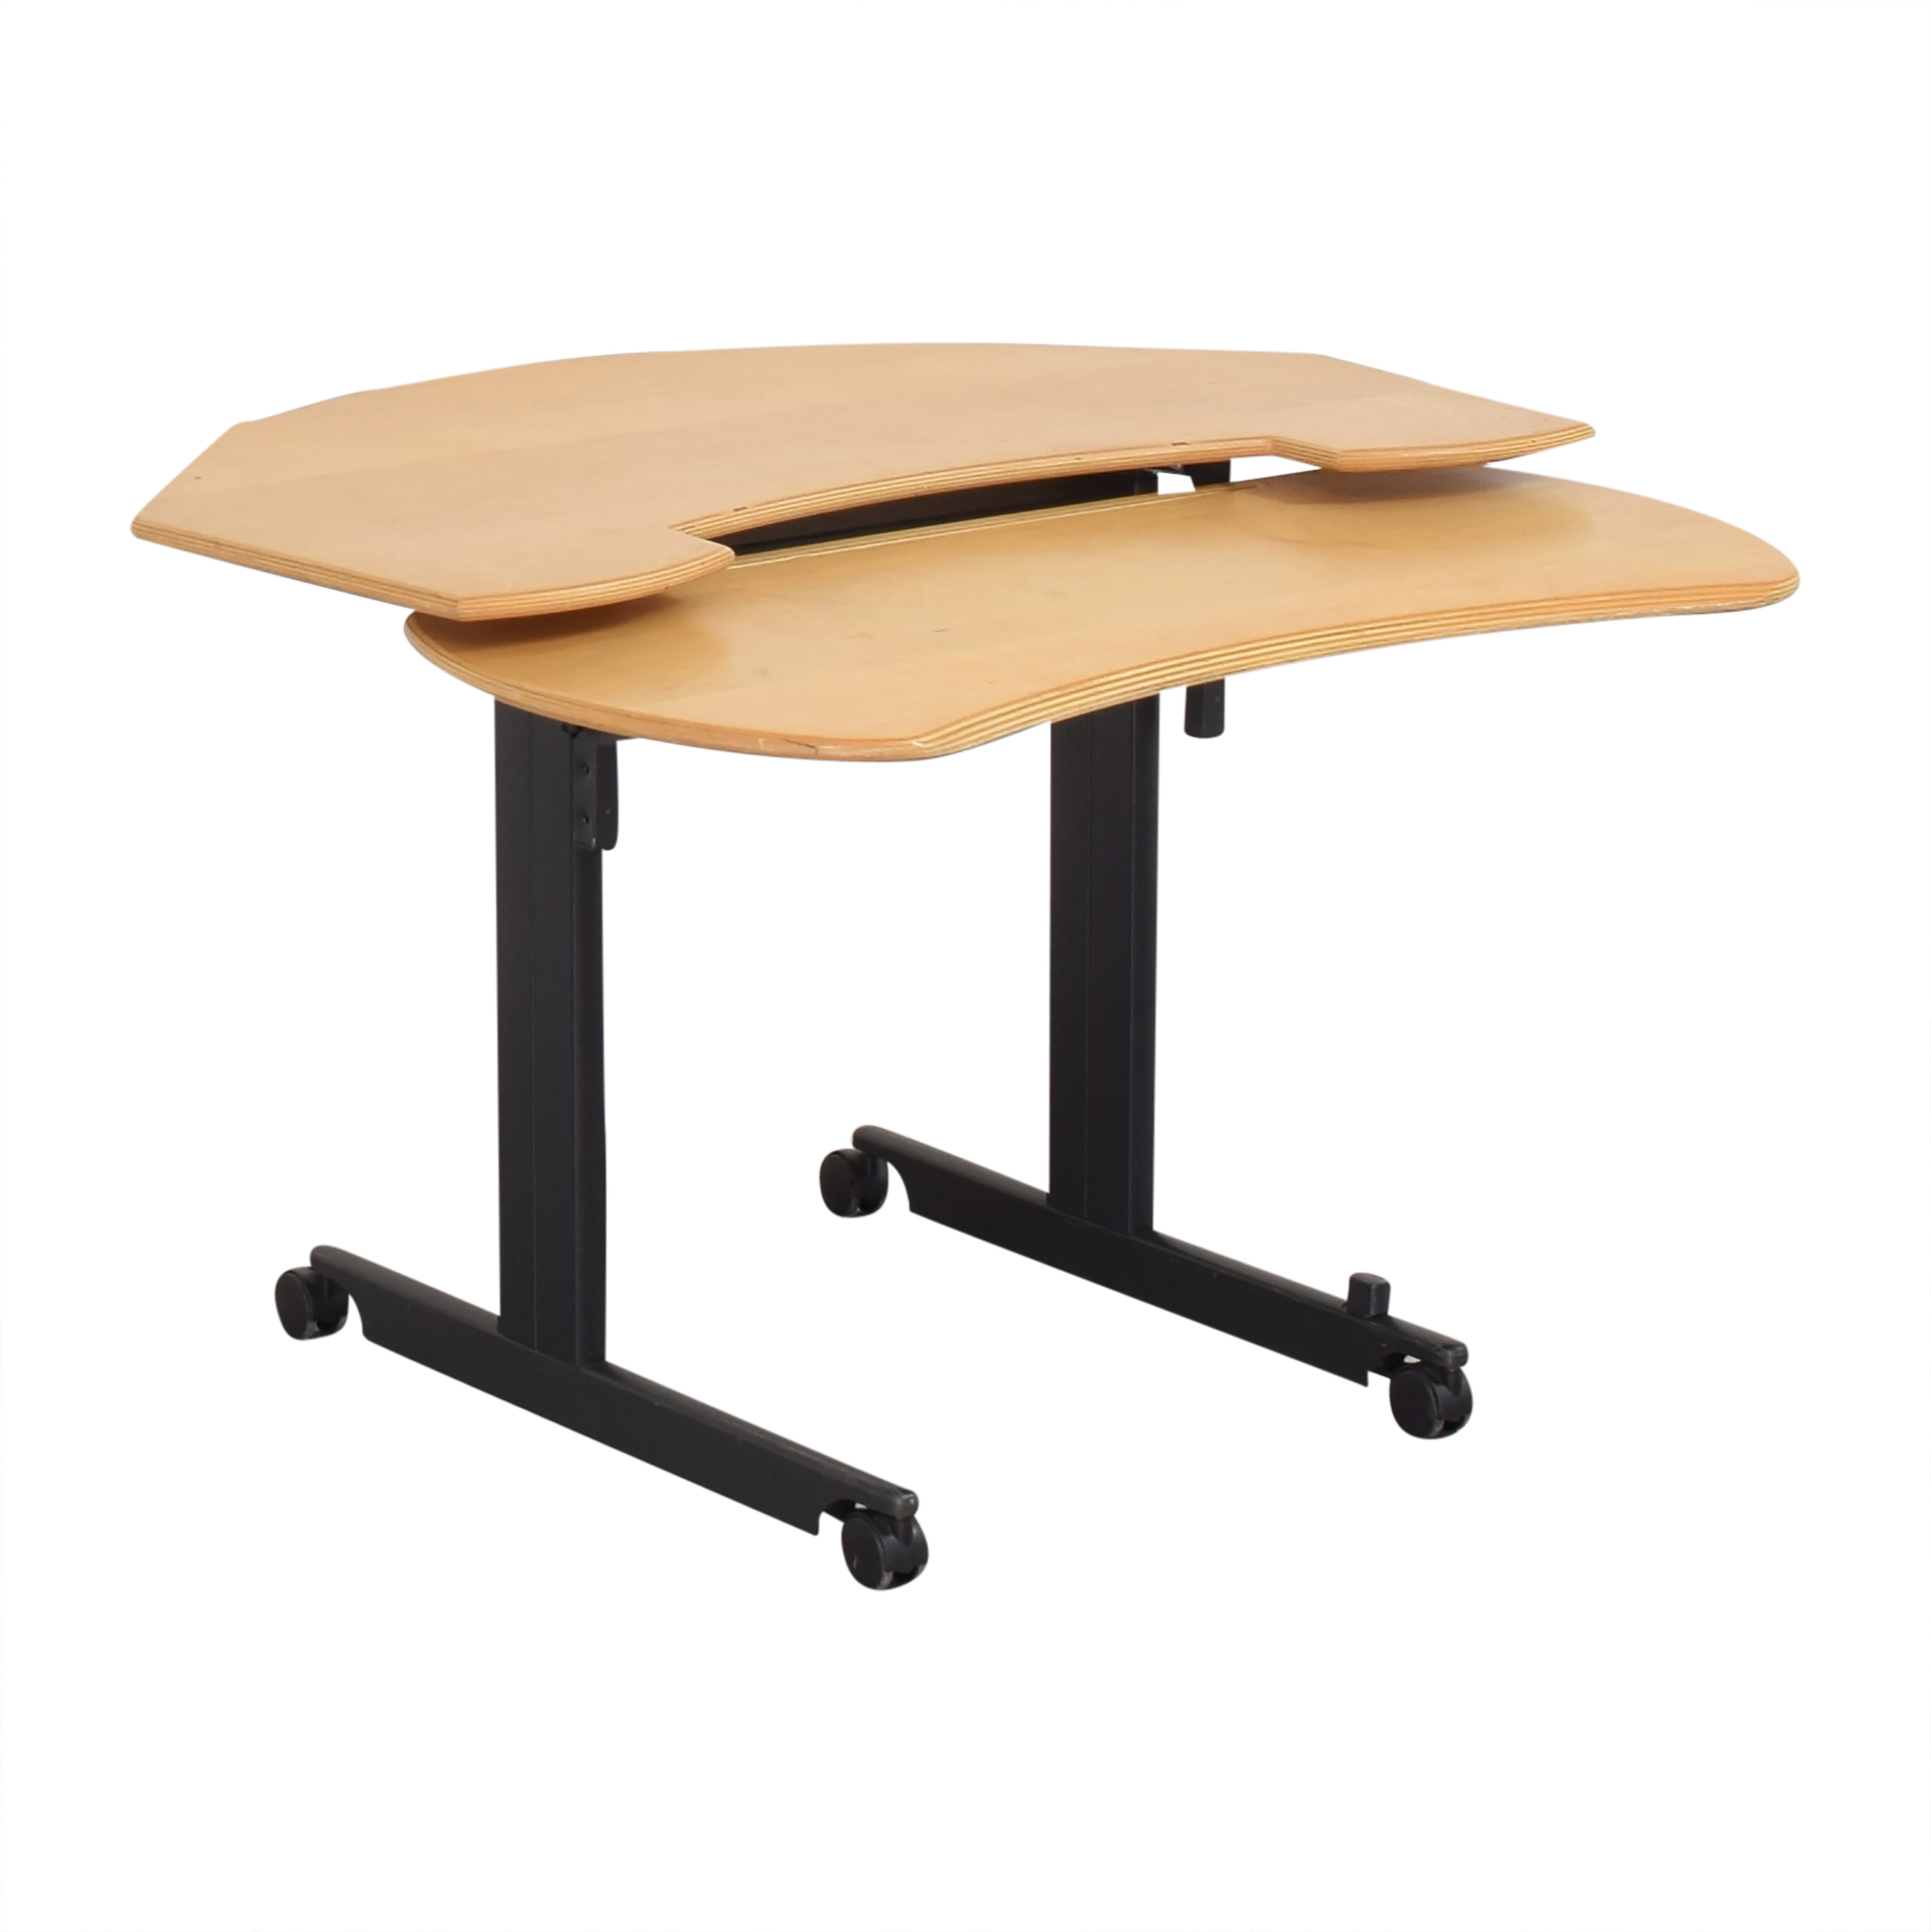 shop Biomorph Tiered Desk Biomorph